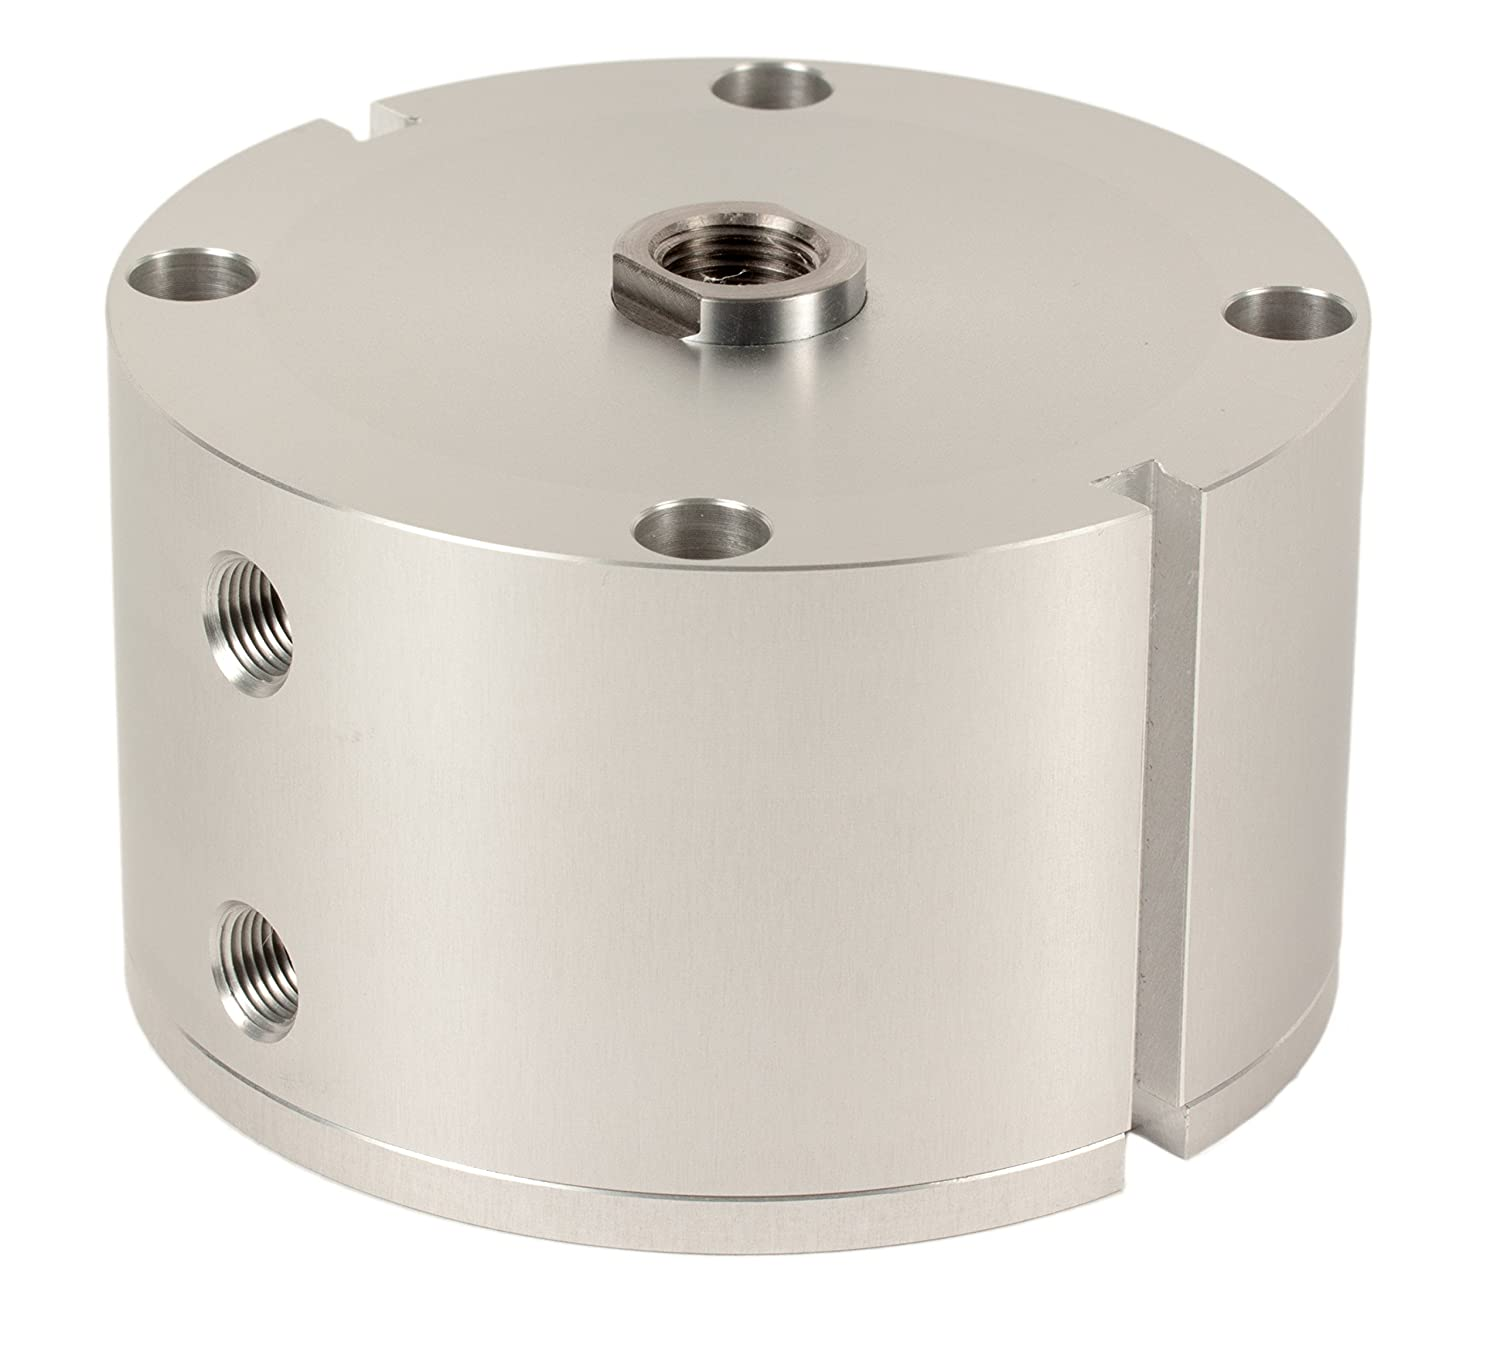 Fabco-Air C-521-X-E Original Pancake Cylinder, Double Acting, Maximum Pressure of 250 PSI, Switch Ready with Magnet, 2-1/2' Bore Diameter x 1' Stroke 2-1/2 Bore Diameter x 1 Stroke FAB   C-521-X-E